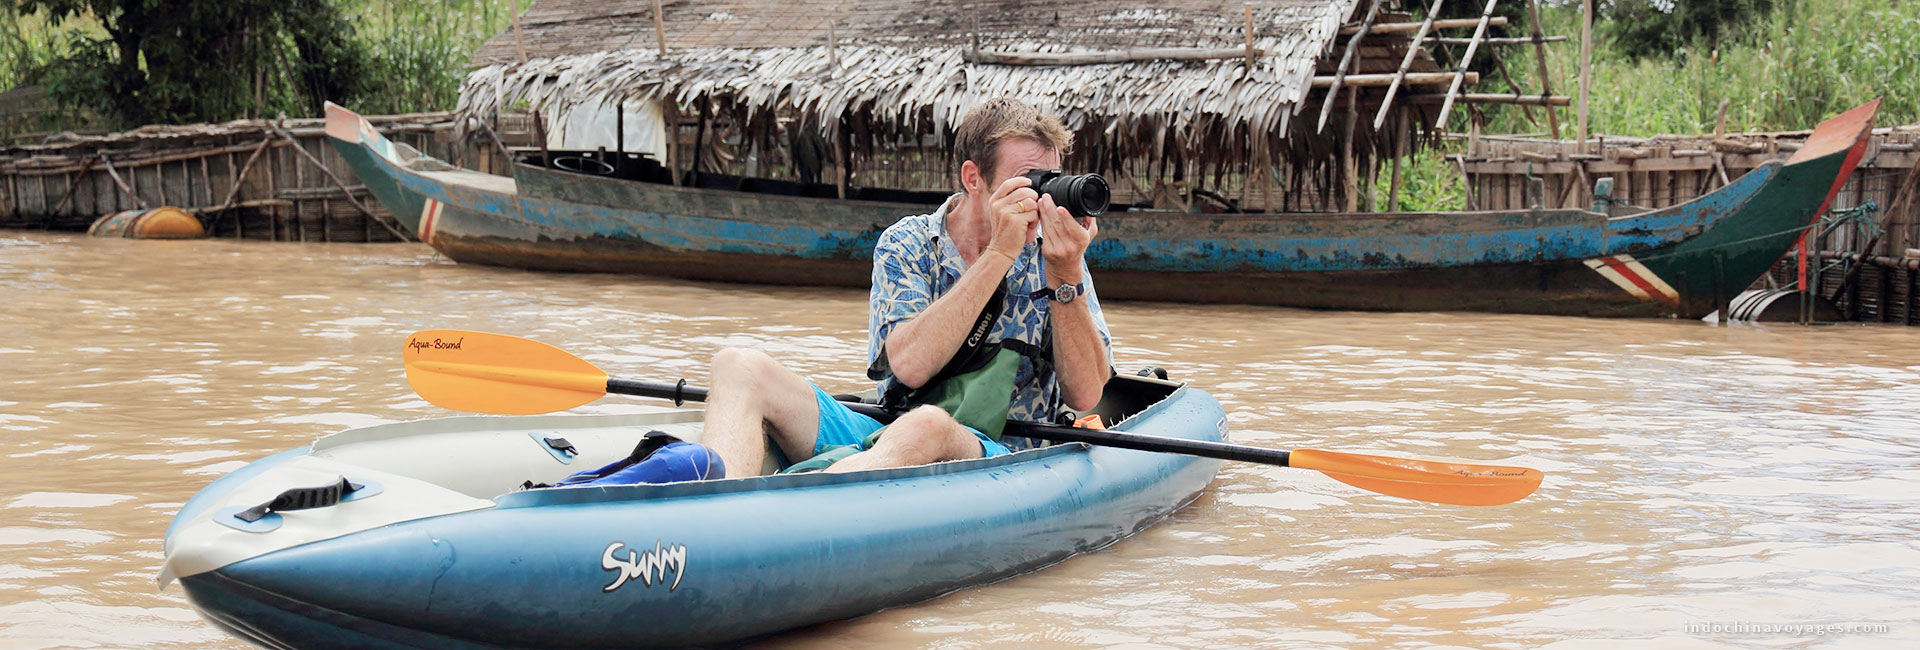 photo gallery Luxury Cruise Mekong